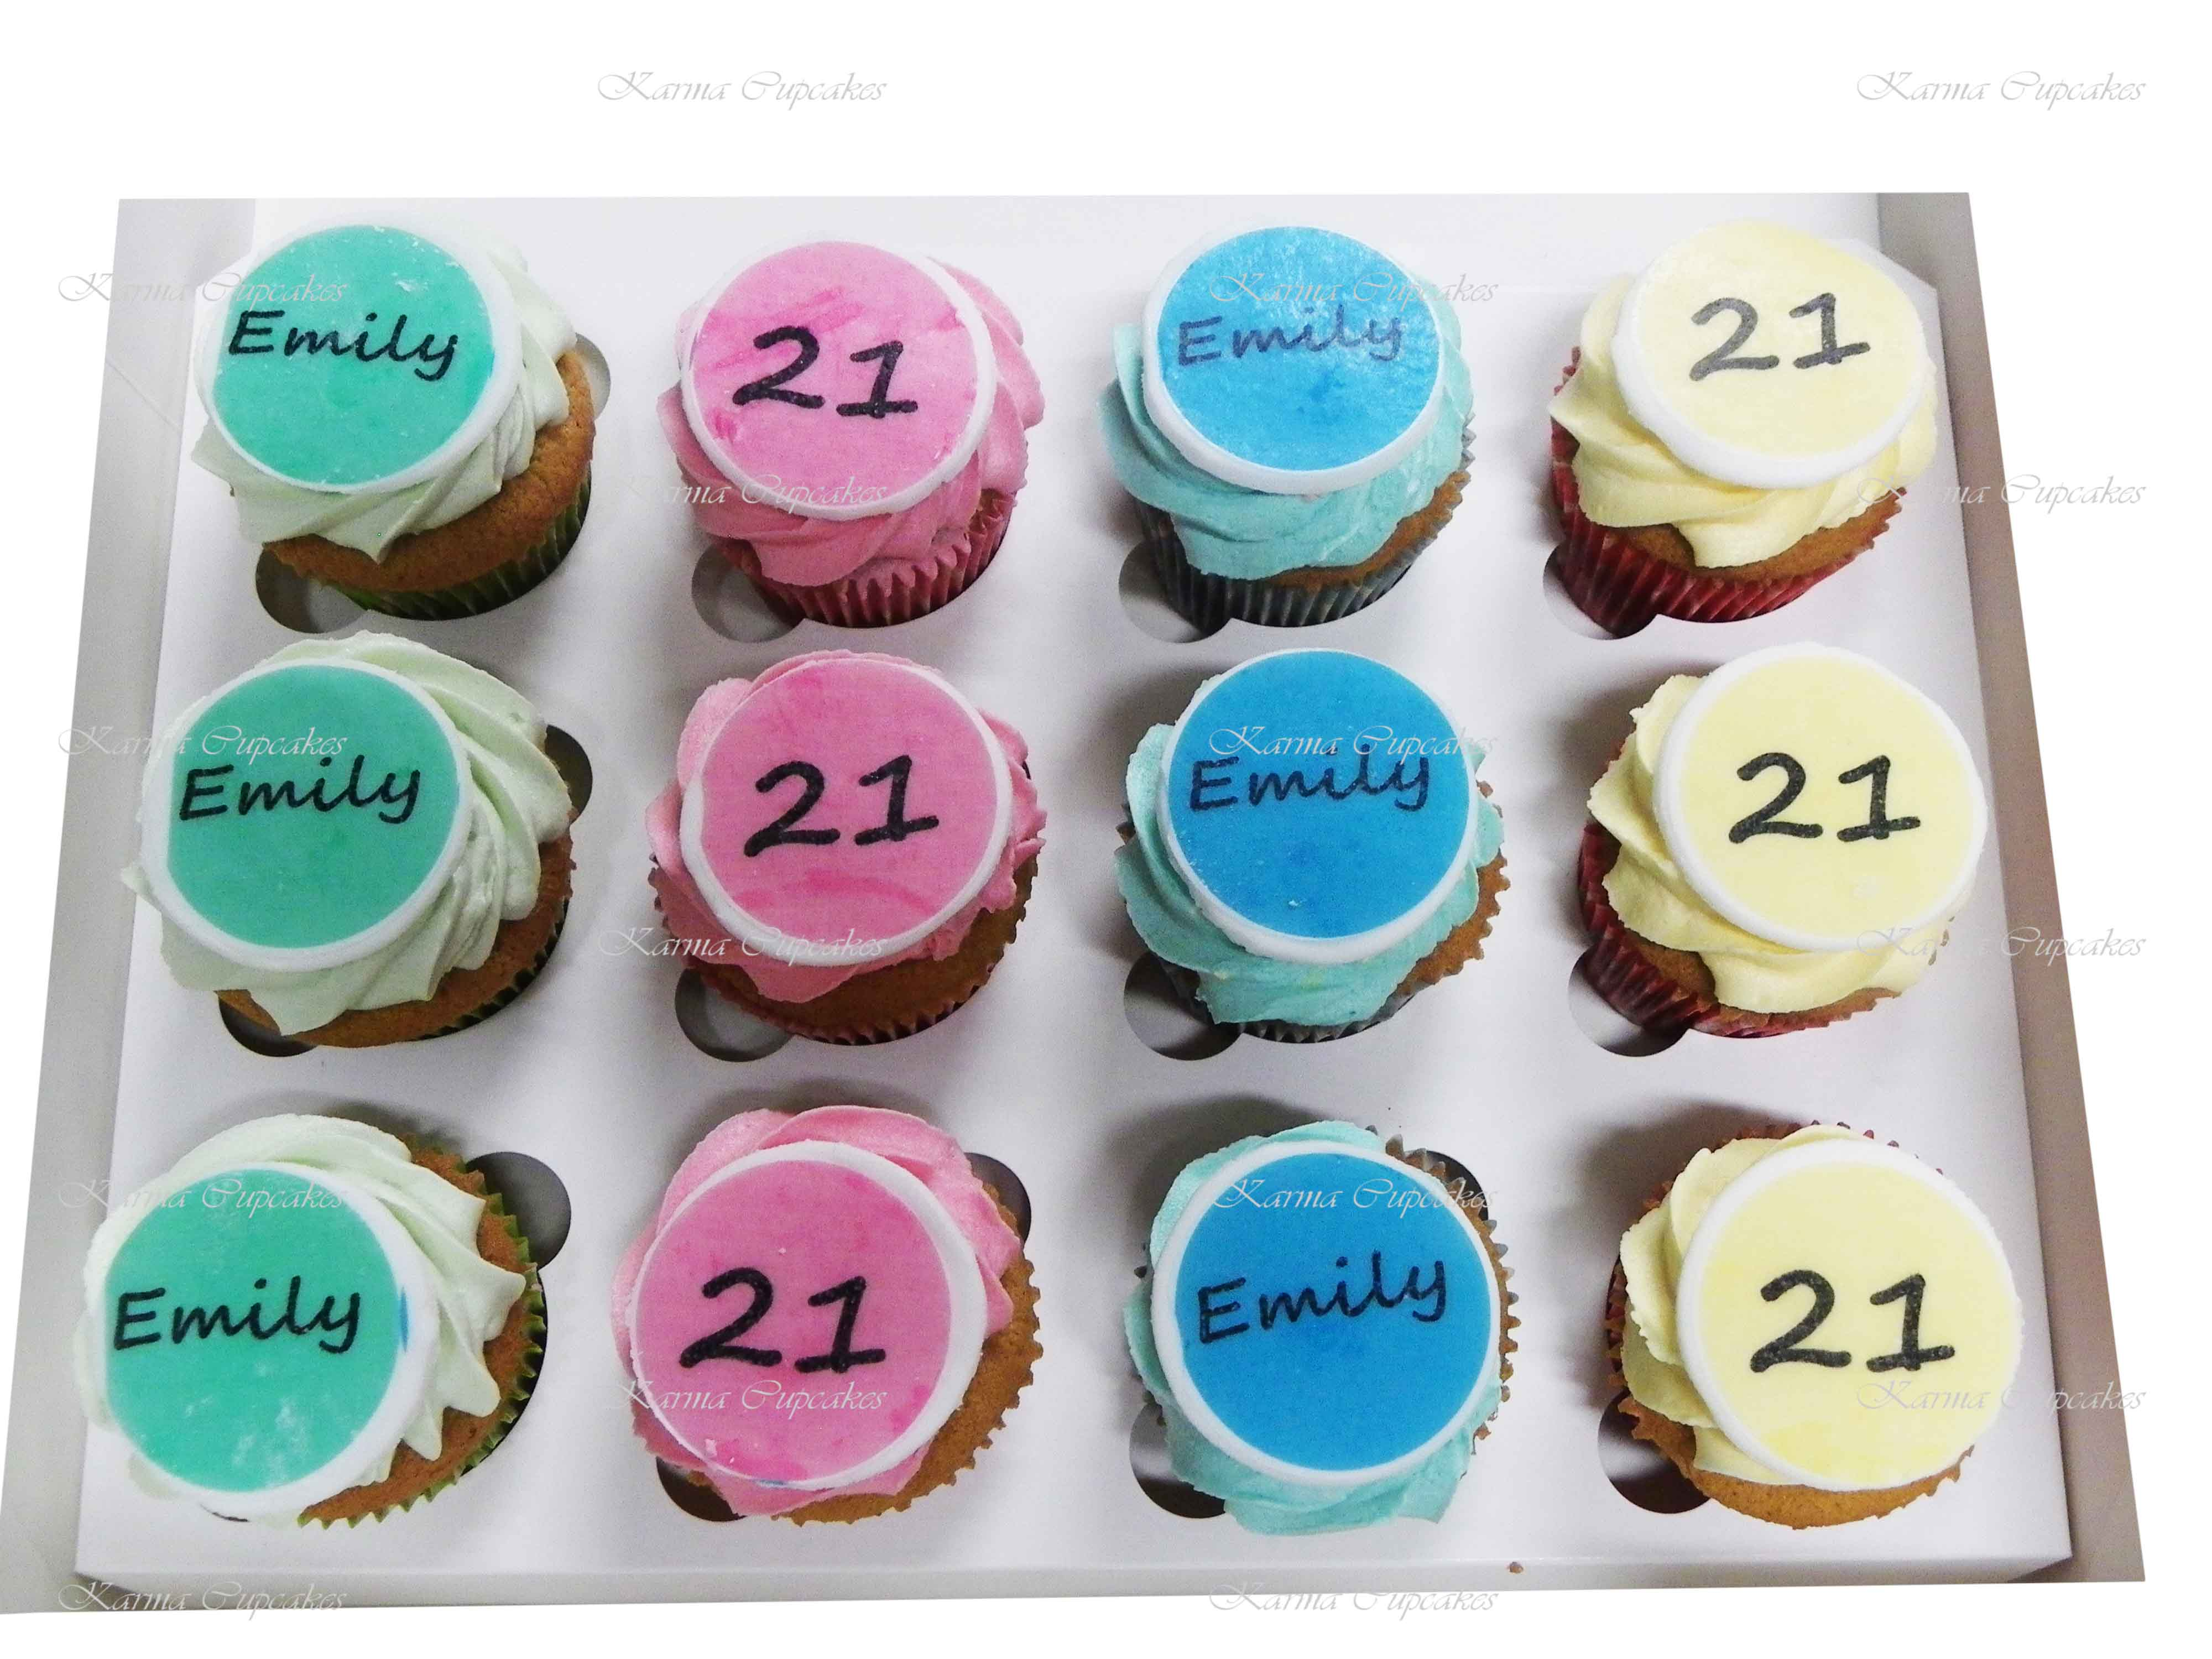 21st Birthday Cupcakes with Edible Name Plagues